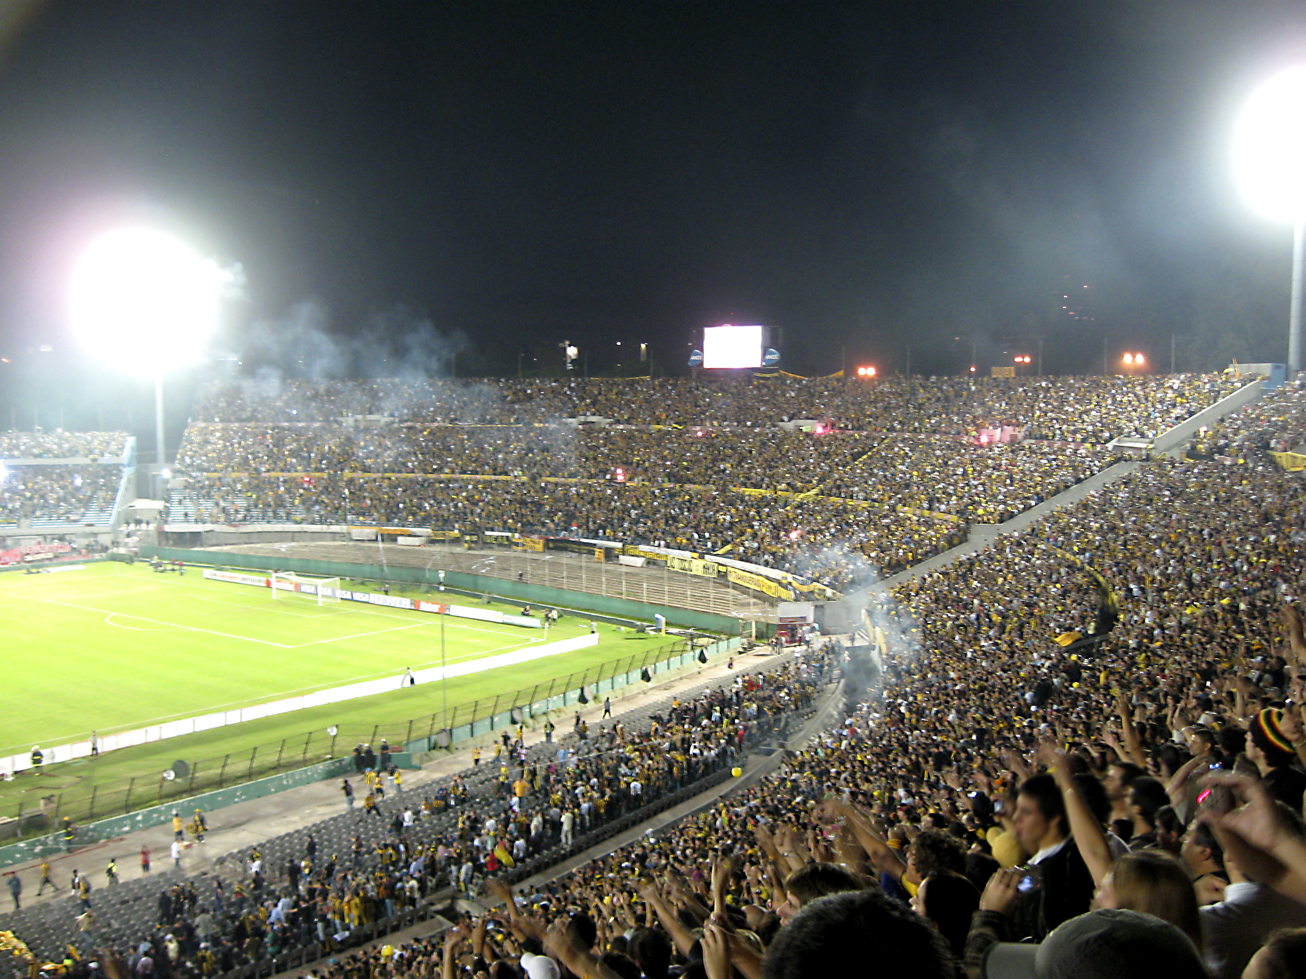 A large stadium with many thousands of people, and the green playing field in the center of the image.